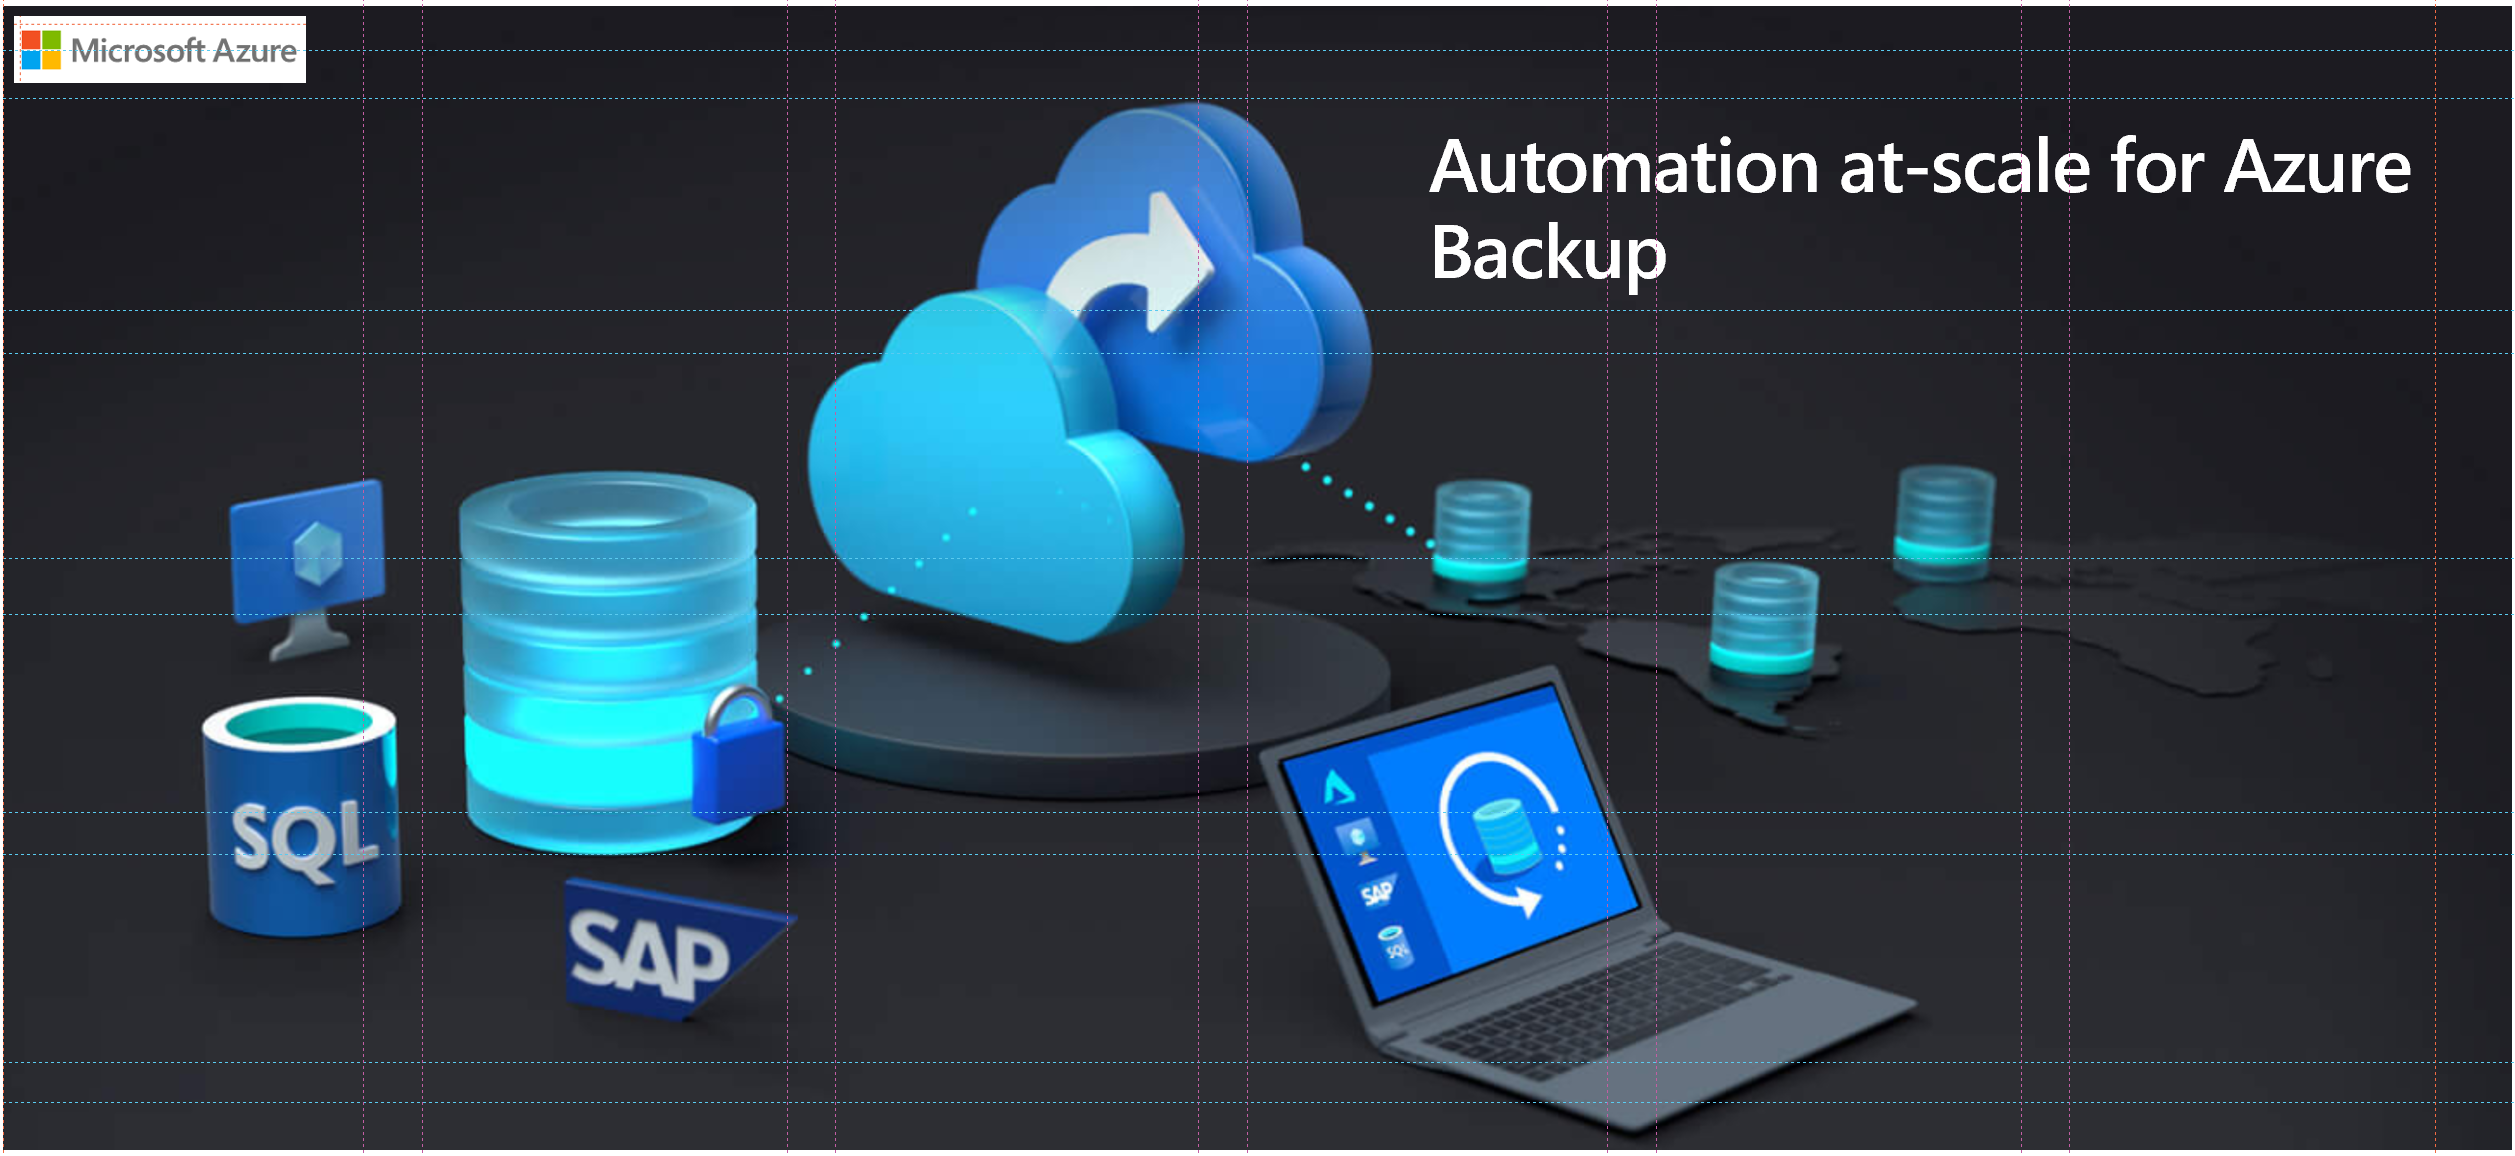 Automation in Azure Backup for management-at-scale